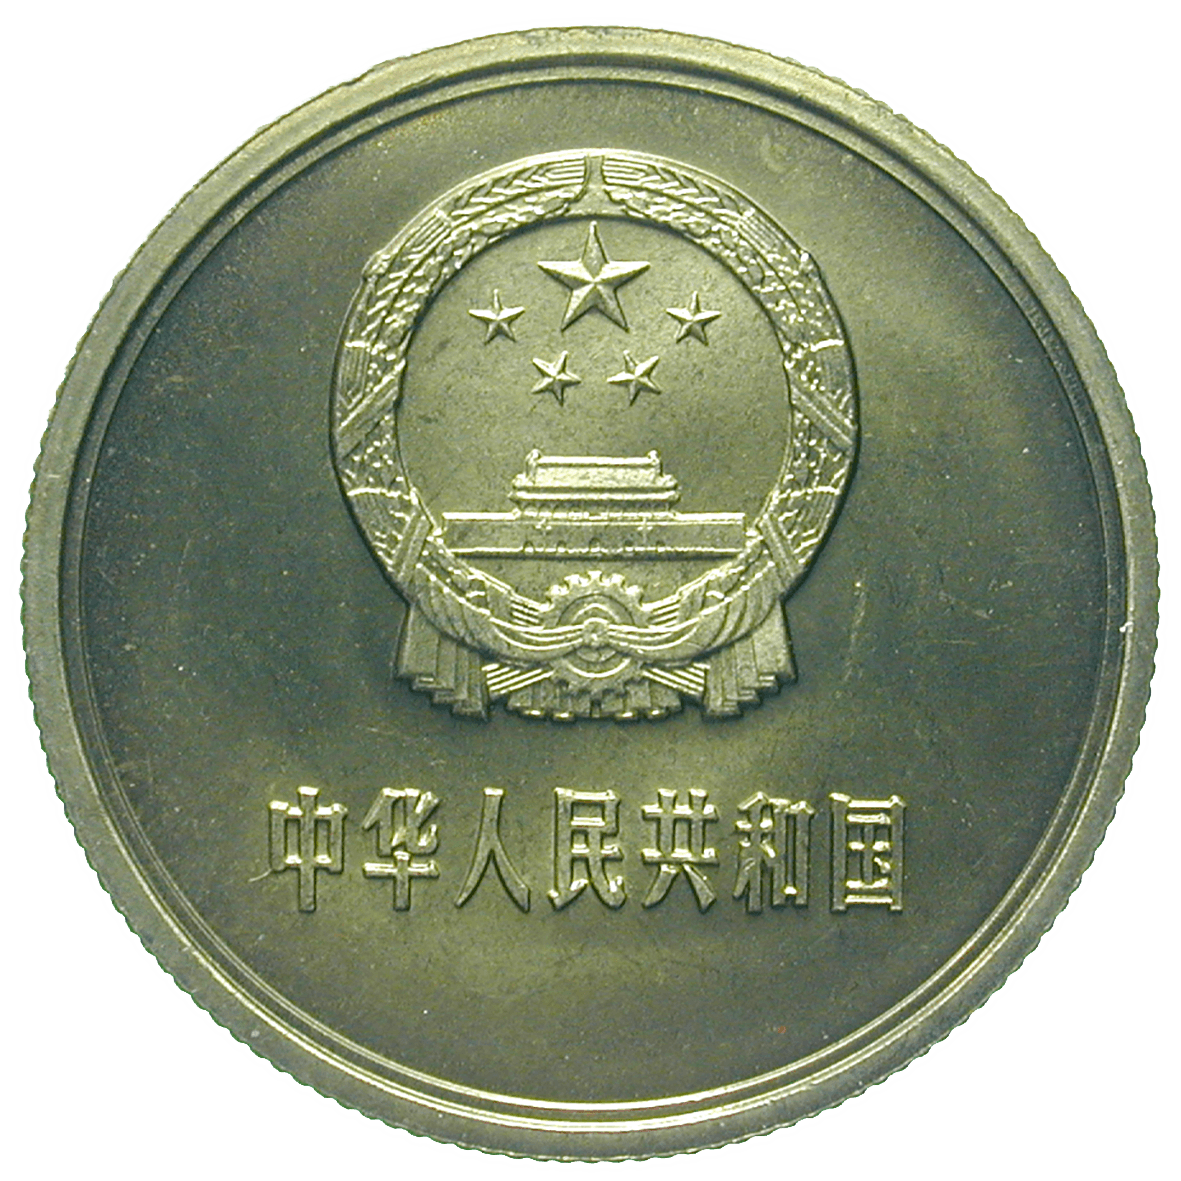 People's Republic of China, 5 Jiao 1980 (obverse)